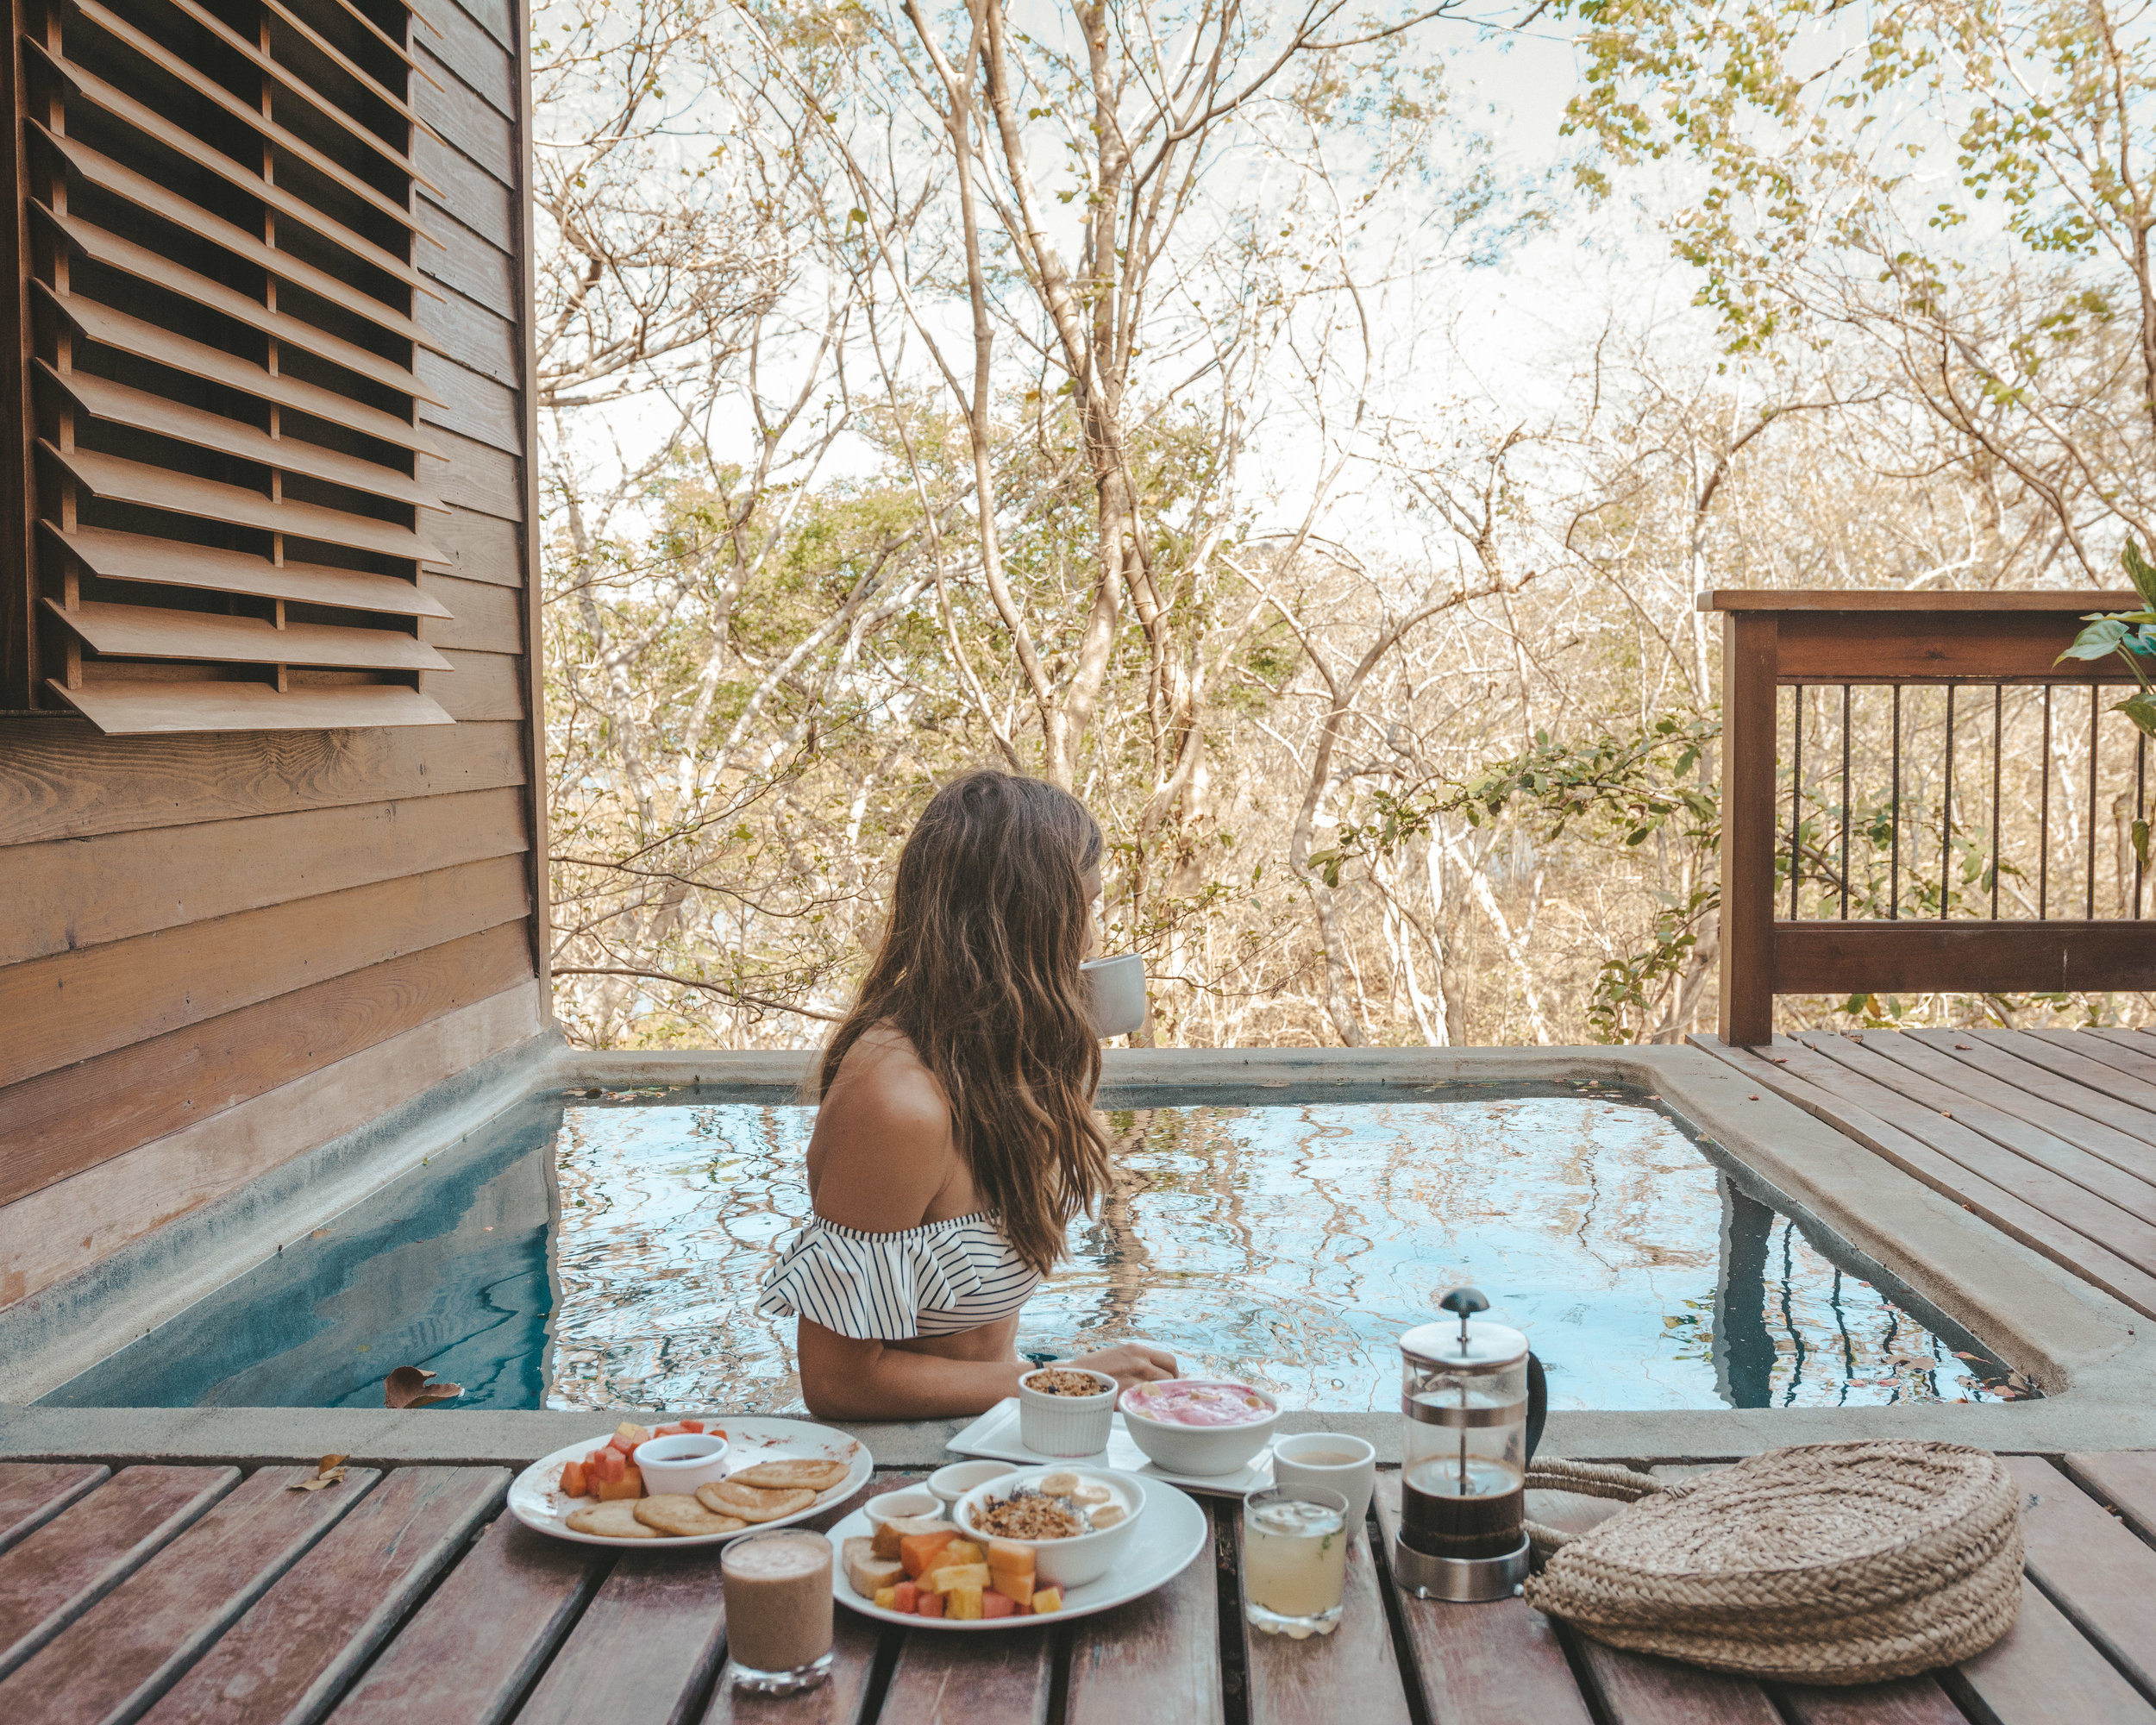 Breakfast in the pool in the treehouse